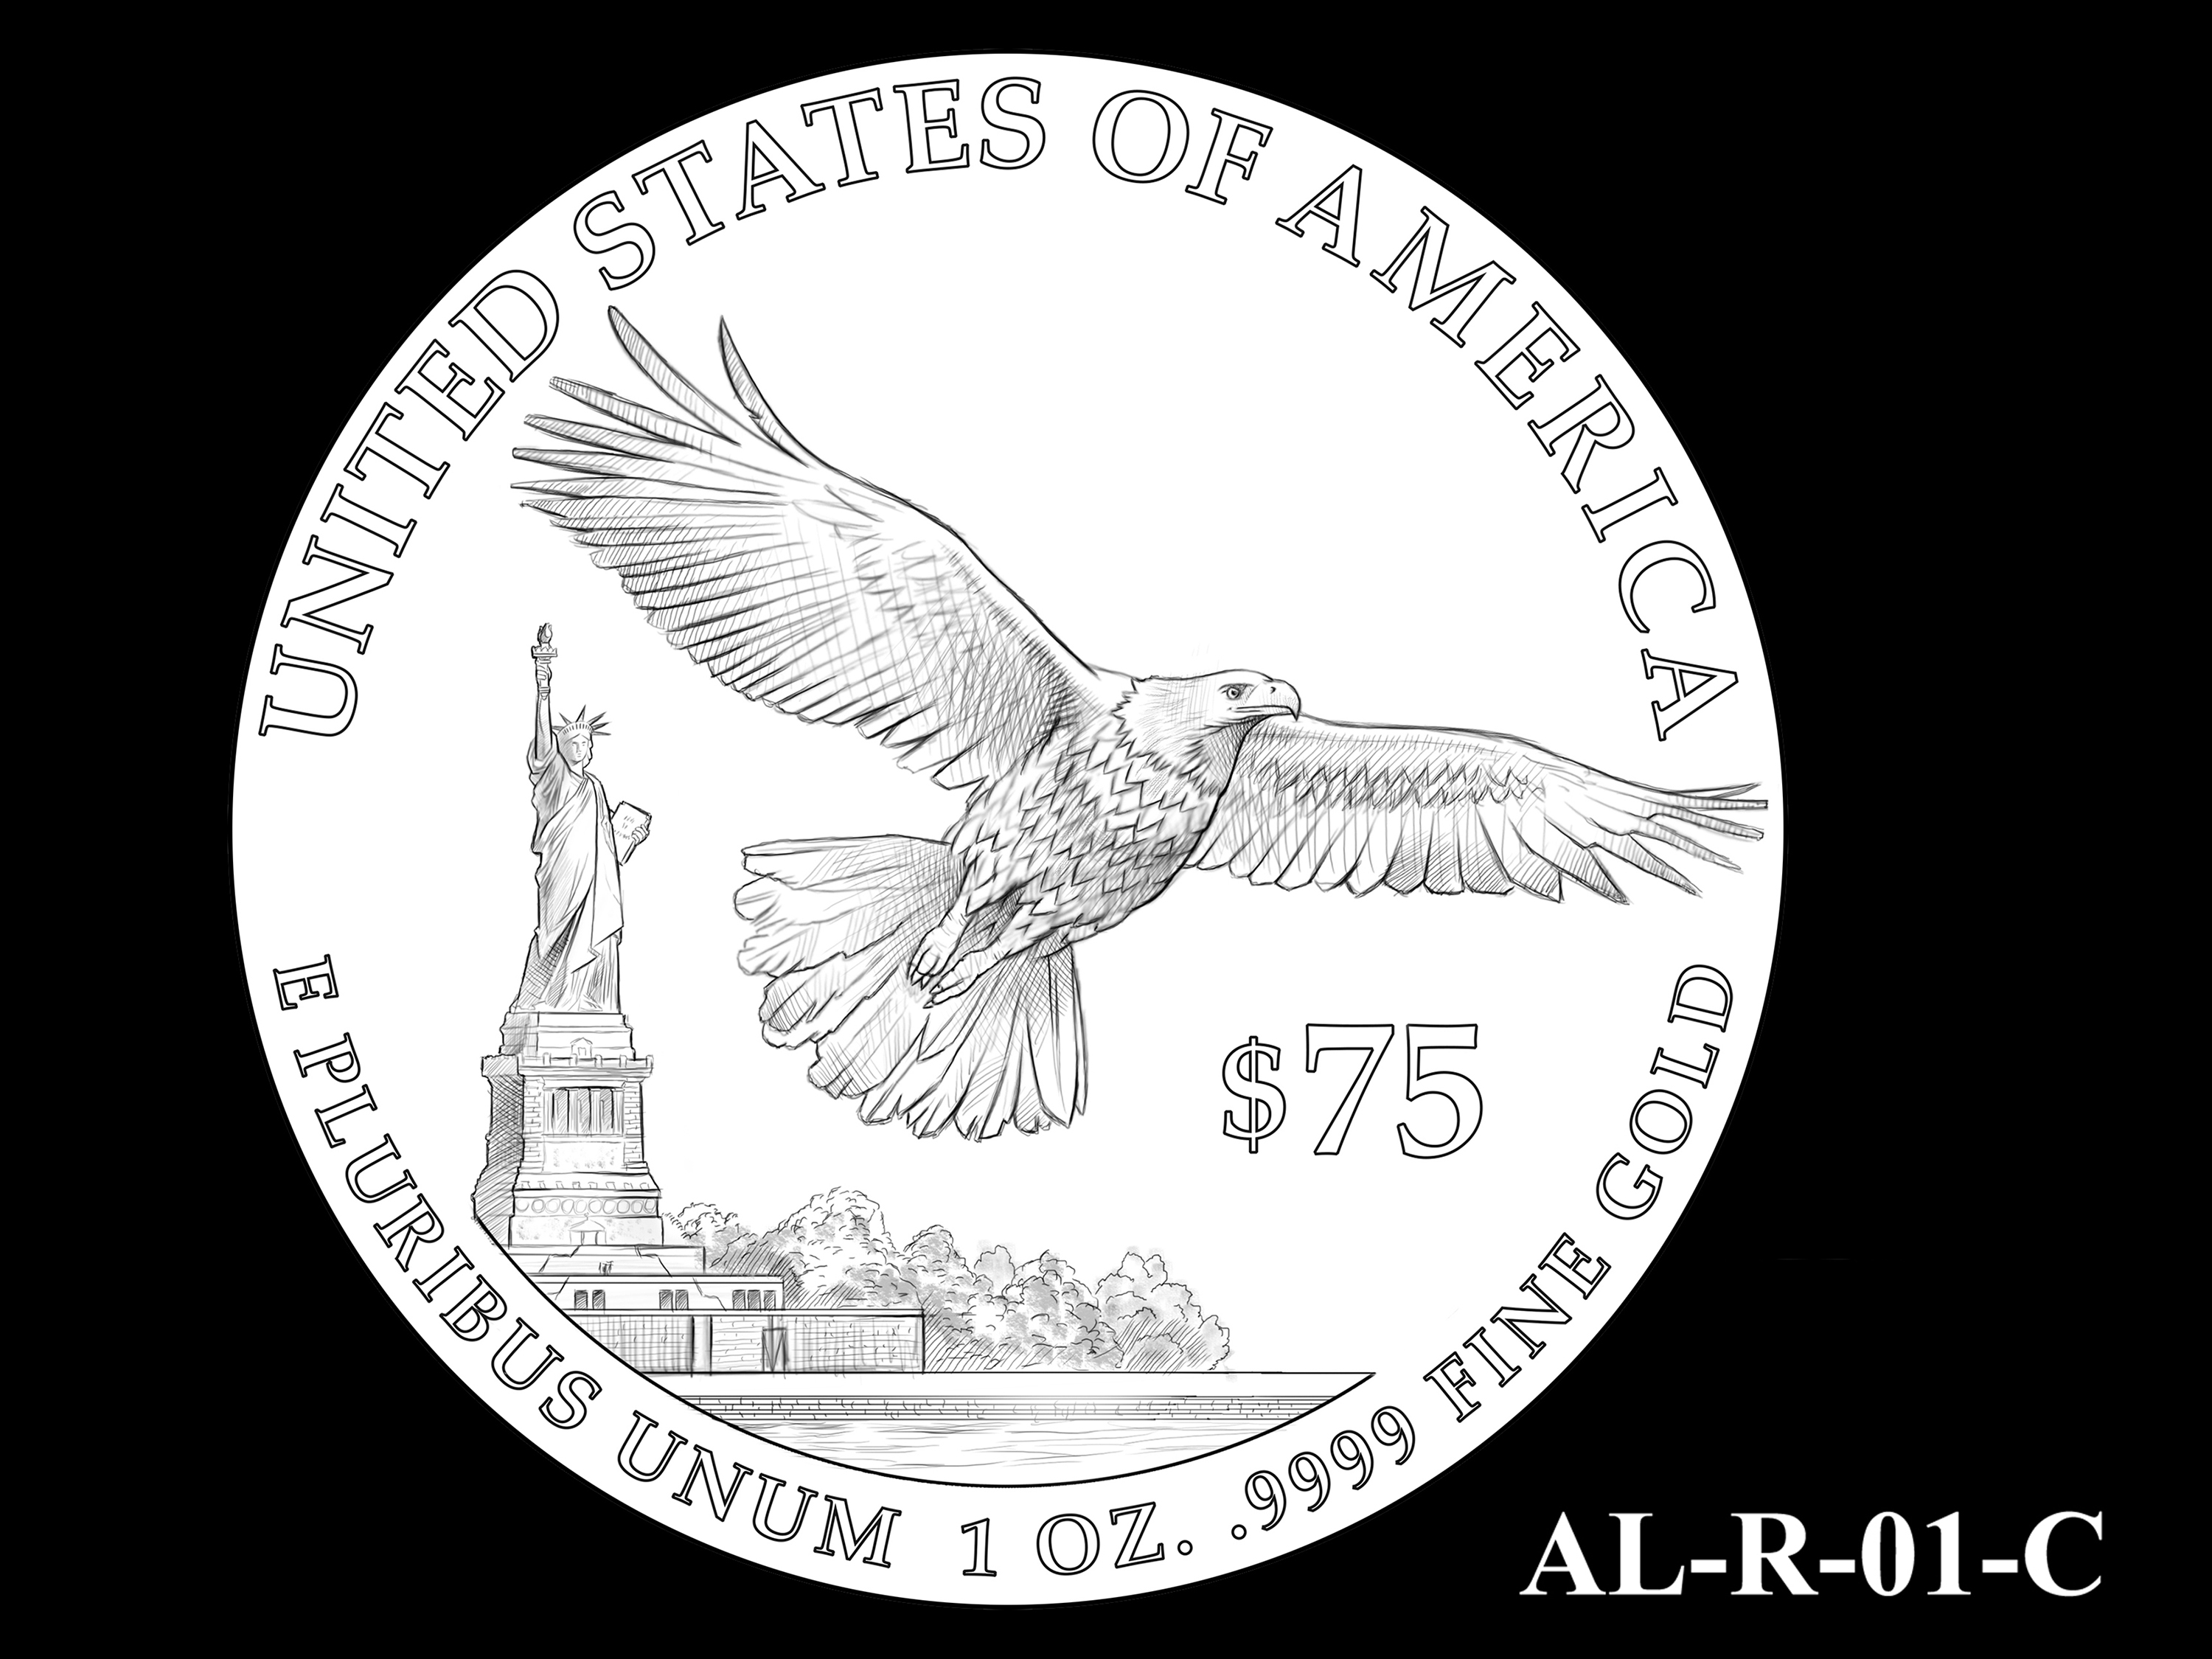 AL-R-01-C -- 2021 American Liberty Gold Coin and Silver Medal Program - Reverse